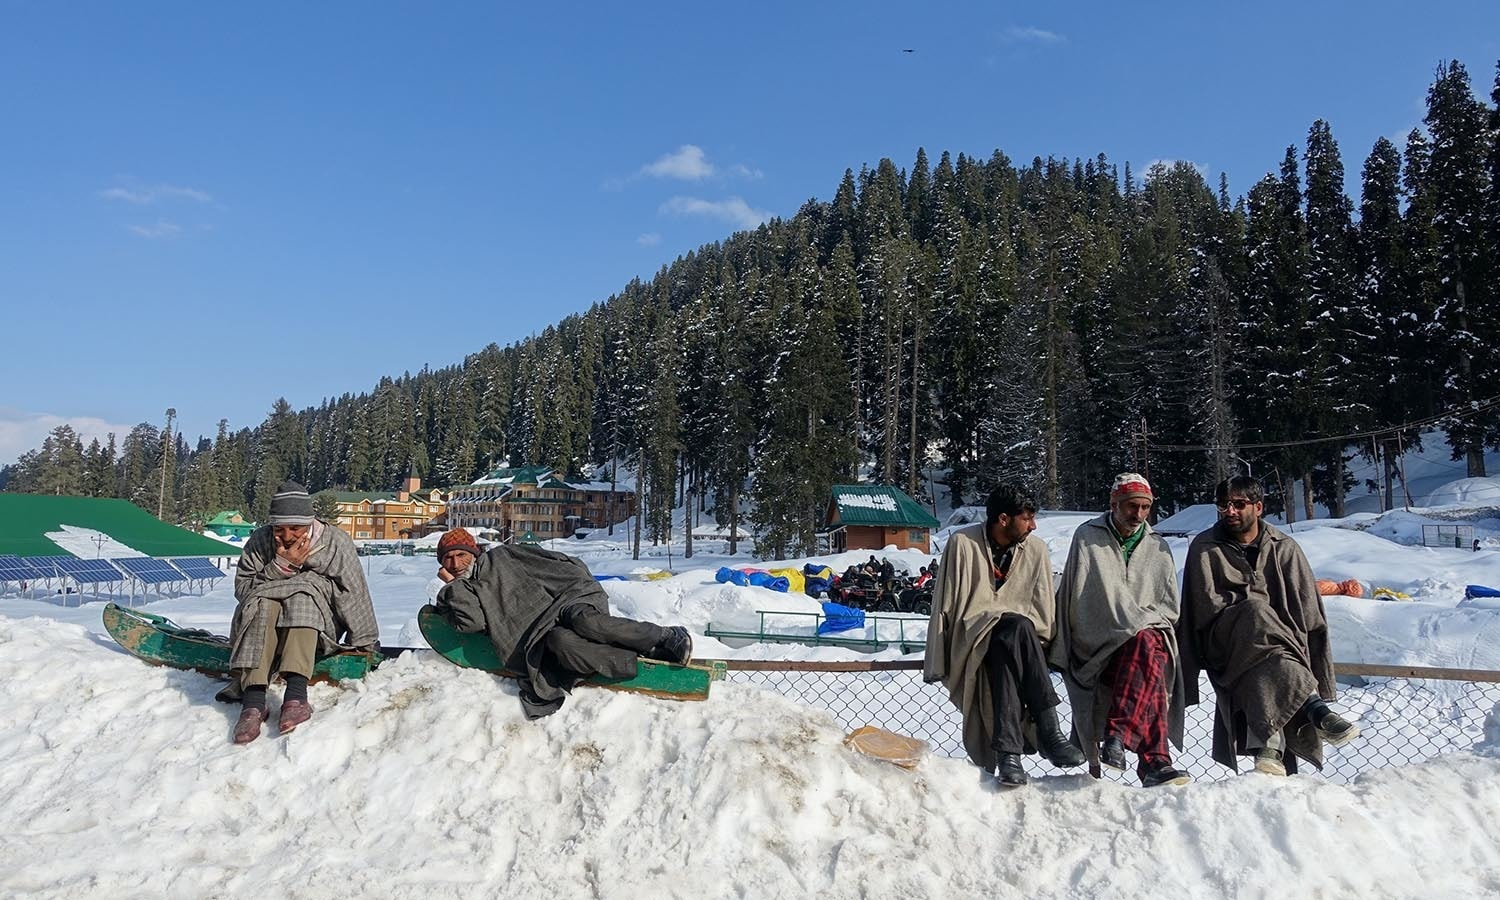 Kashmiris wait for the arrival of tourists at Gulmarg in India-held Kashmir.─AFP